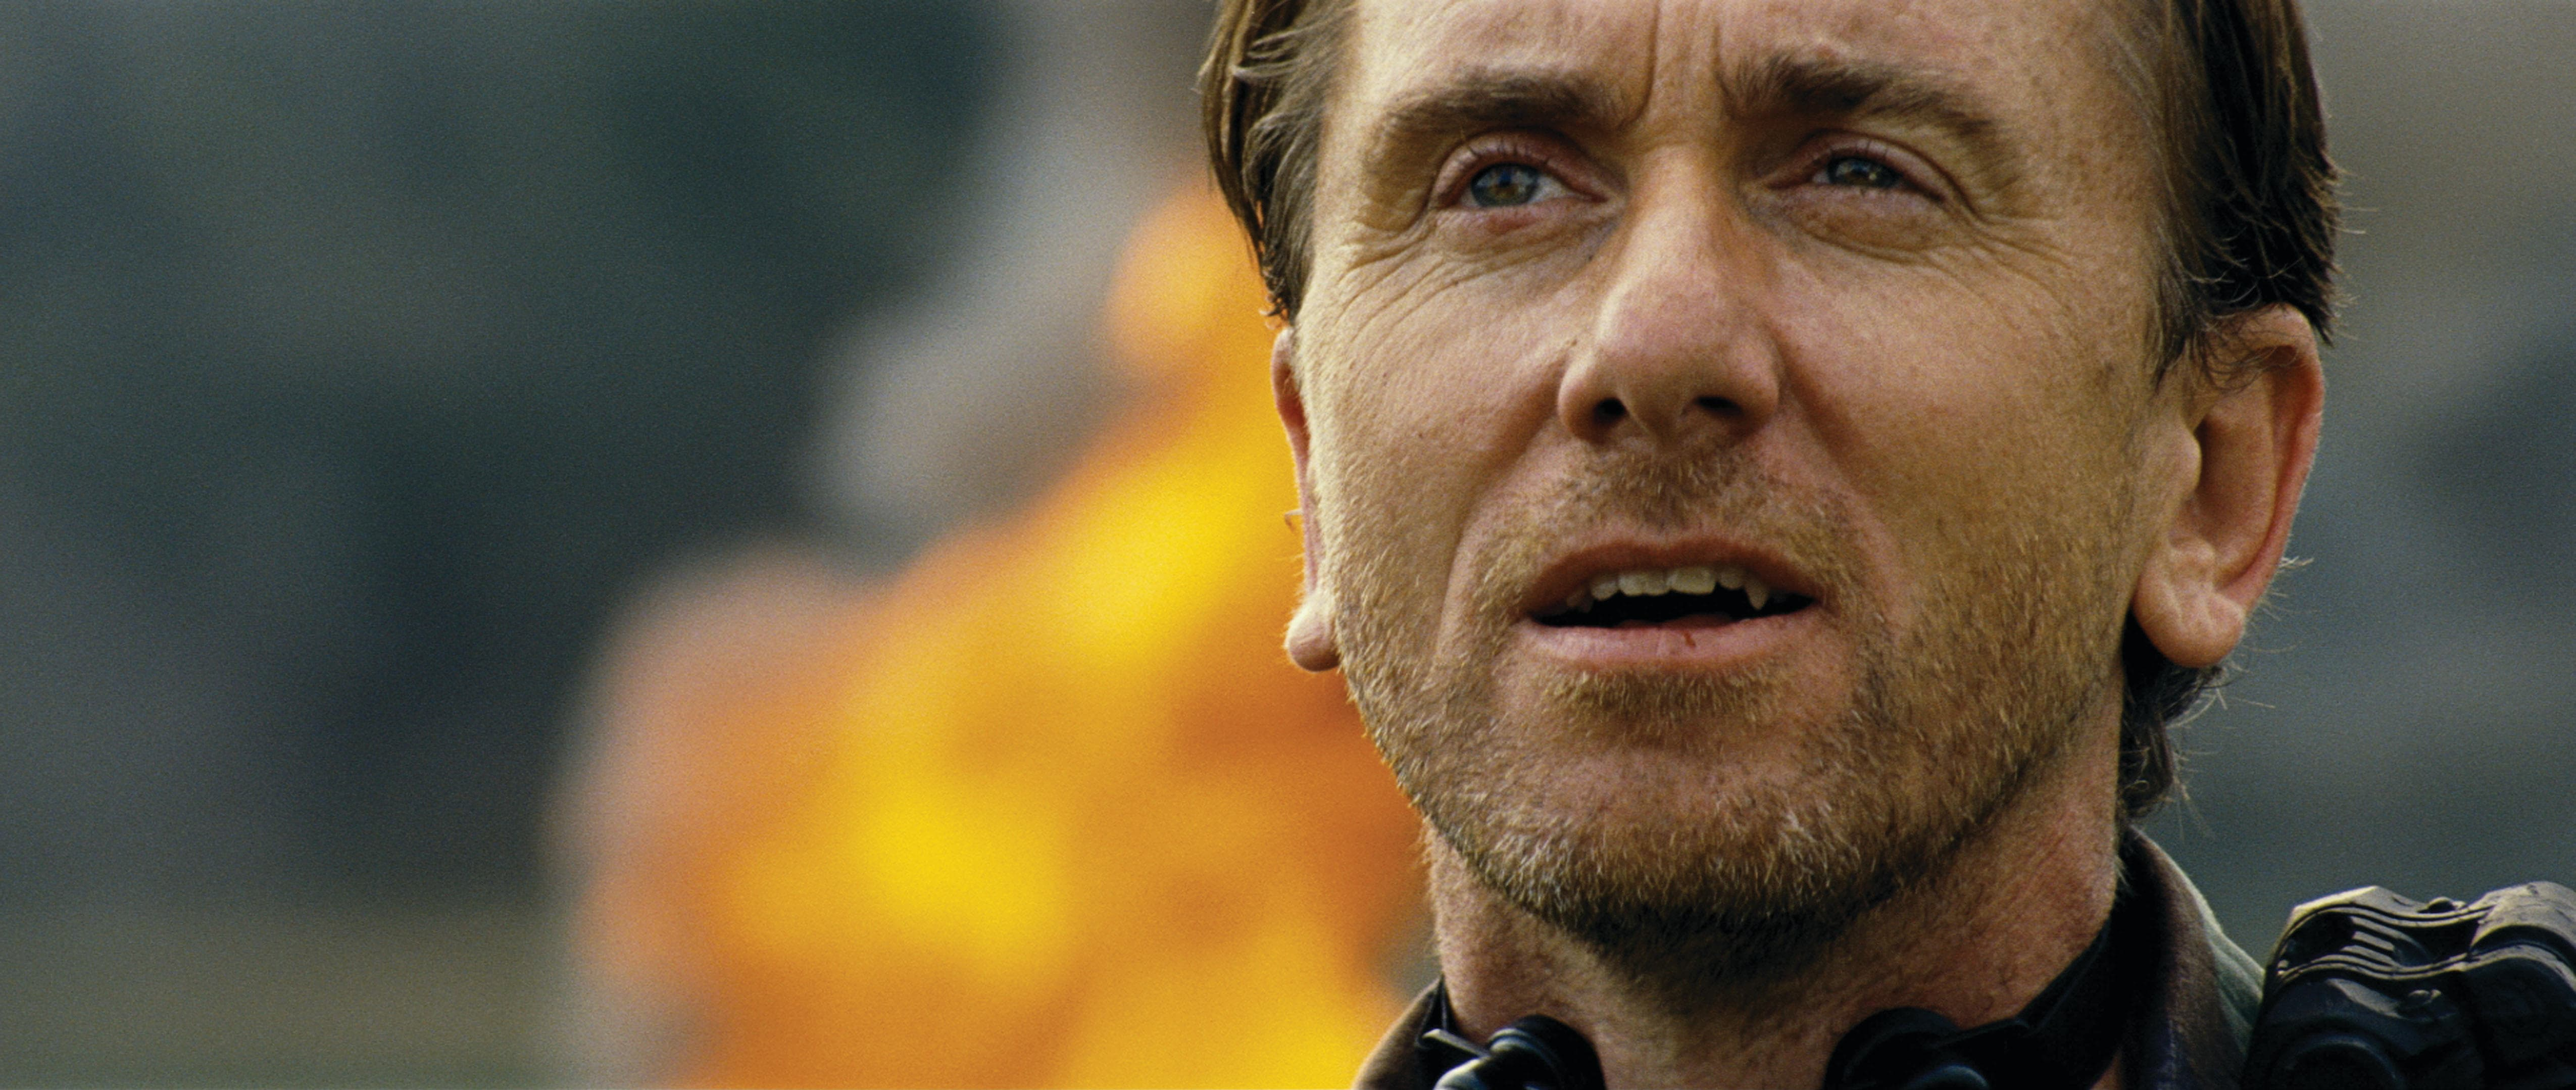 Tim Roth Desktop wallpaper